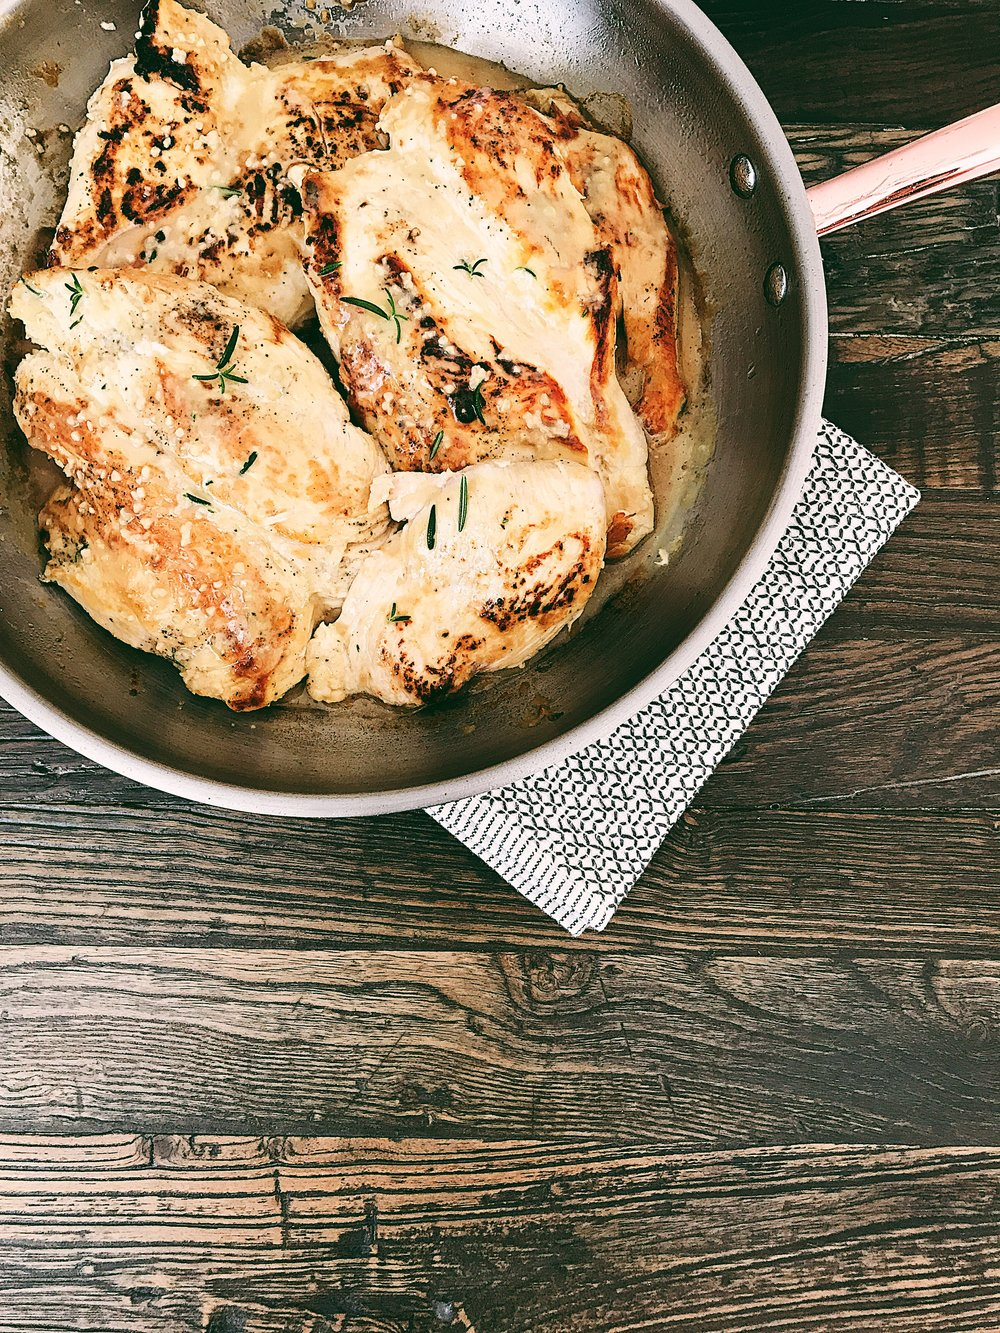 Honey Dijon Rosemary Chicken Recipe with Apple Cider Vinegar and Garlic.